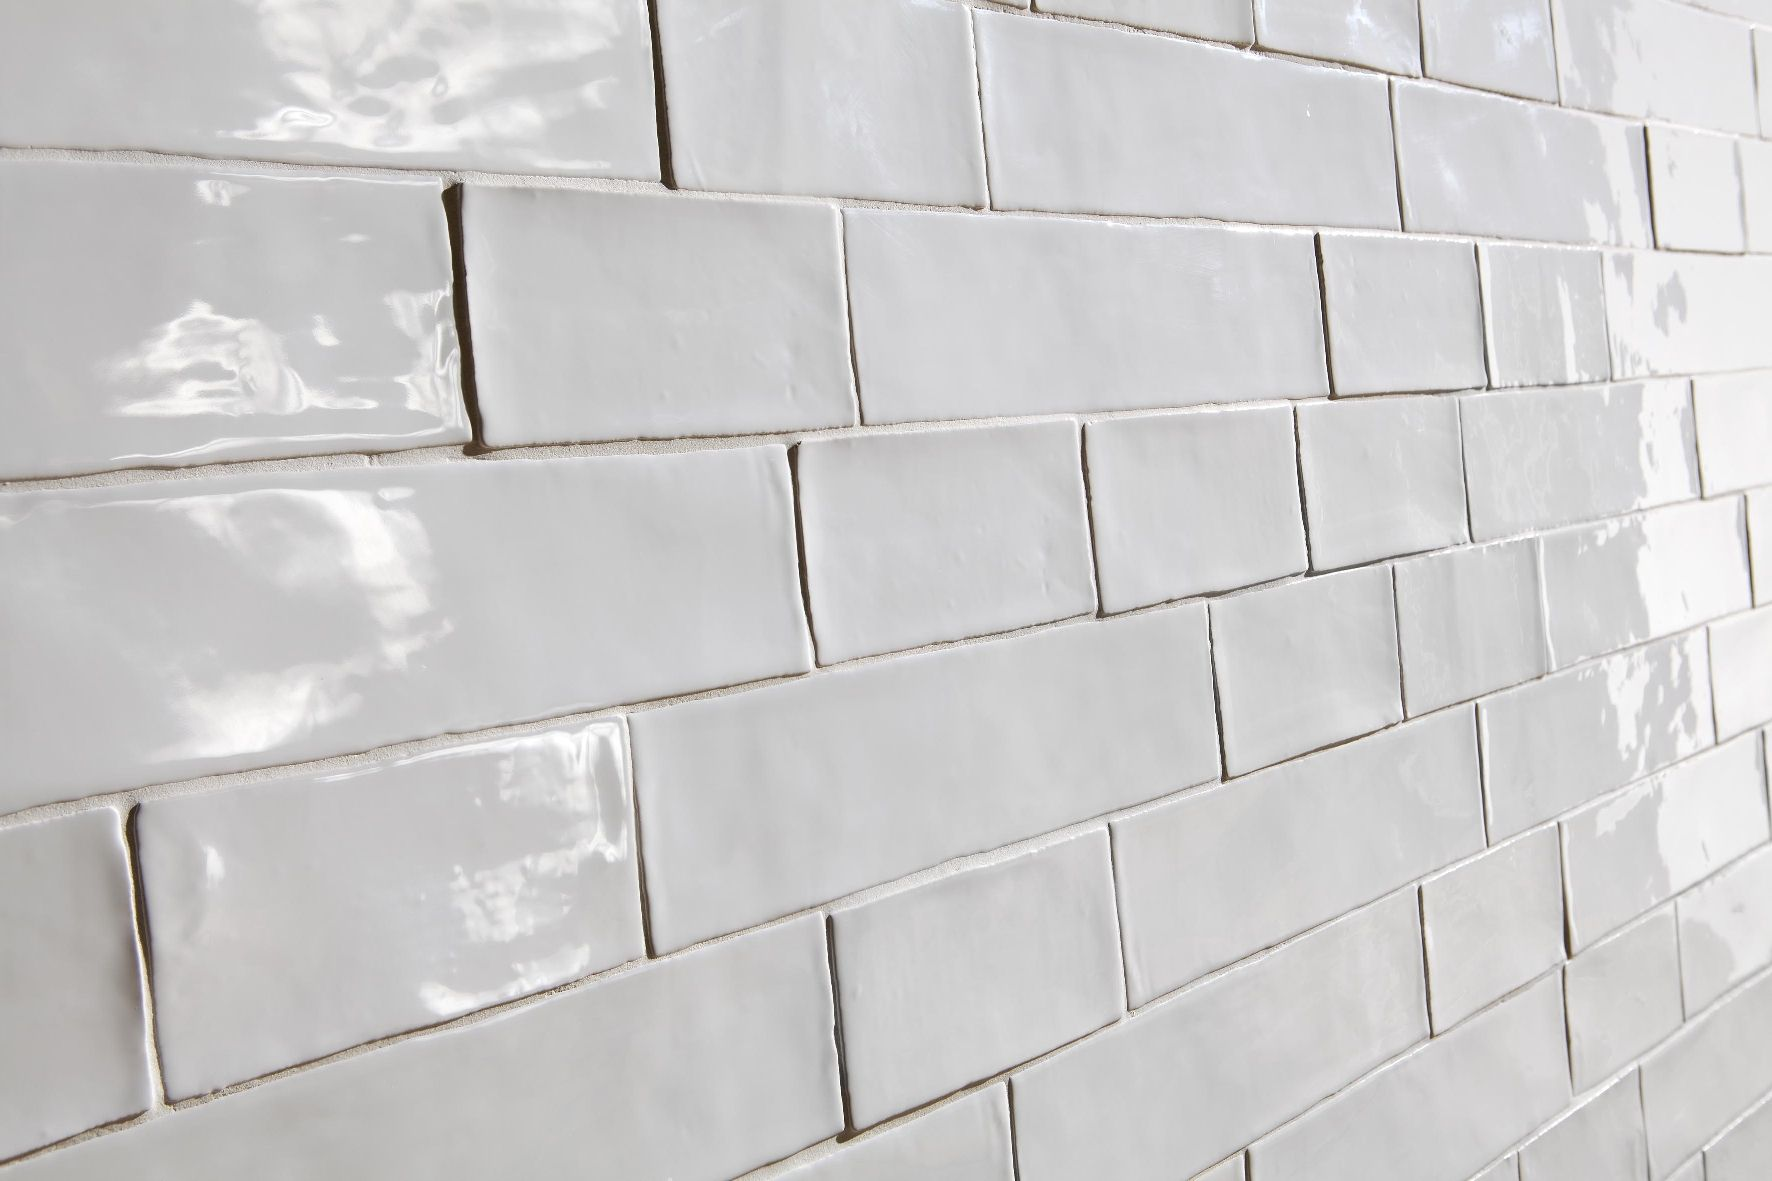 White Brick Look Tile Argila White Better Than Vintage Handmade Look Subway Tile